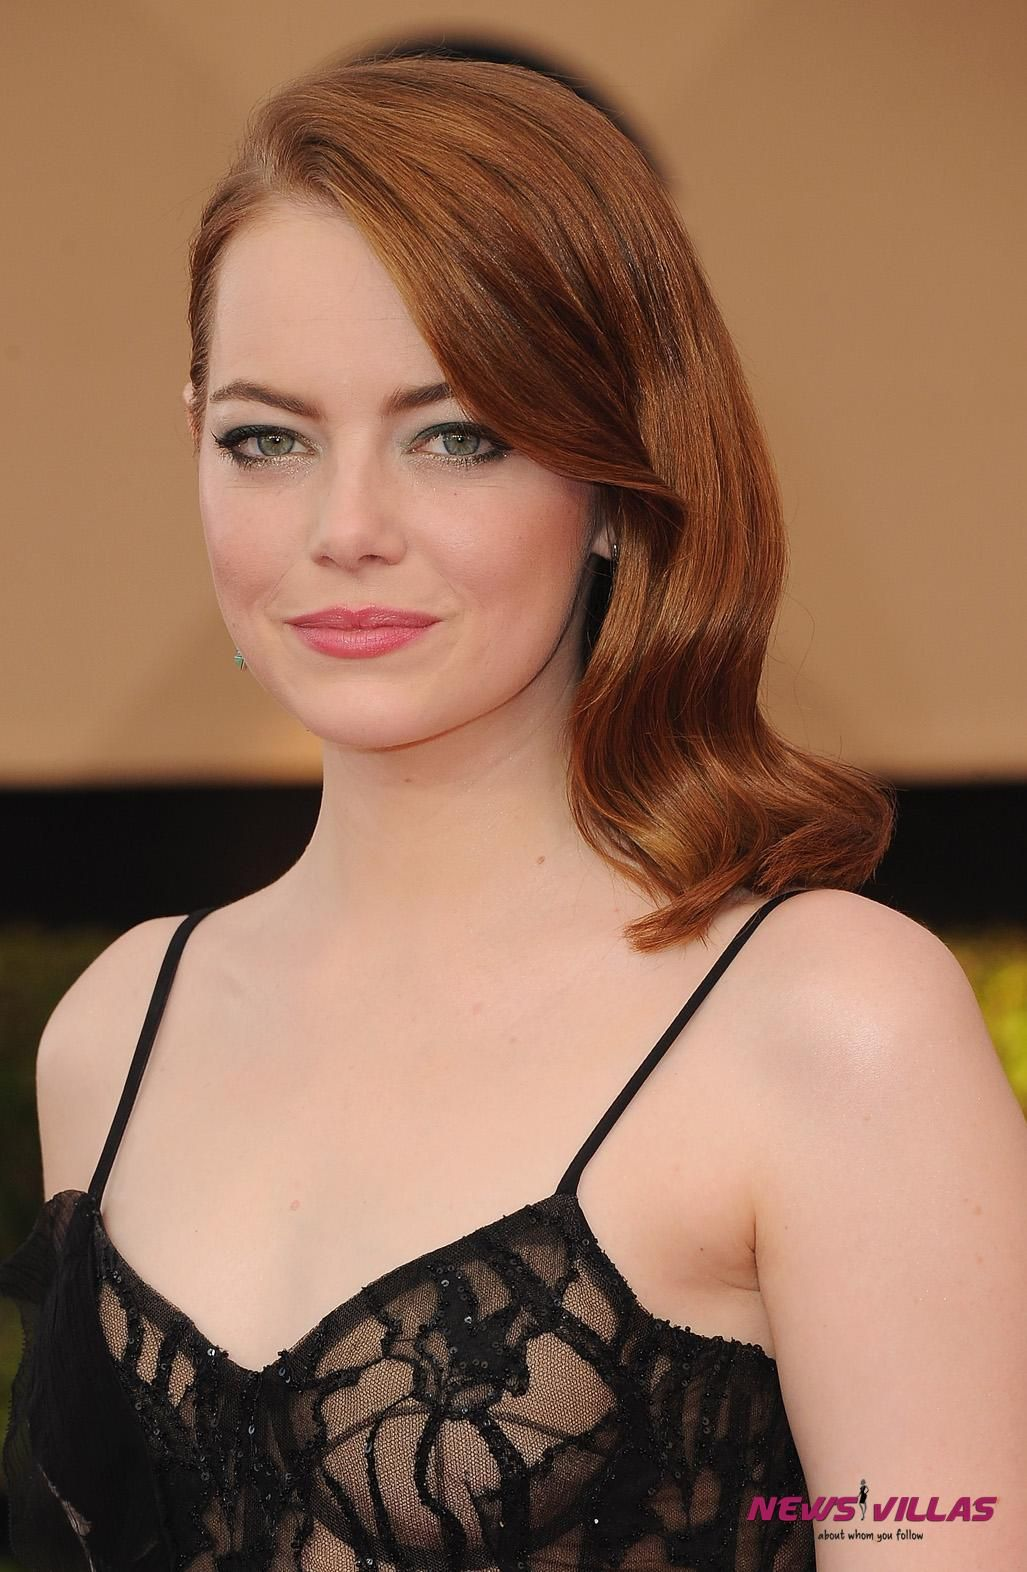 Emma Stone - All Hot HD Photos and Pictures | NewsVillas - News Villas | Emma stone hair ...